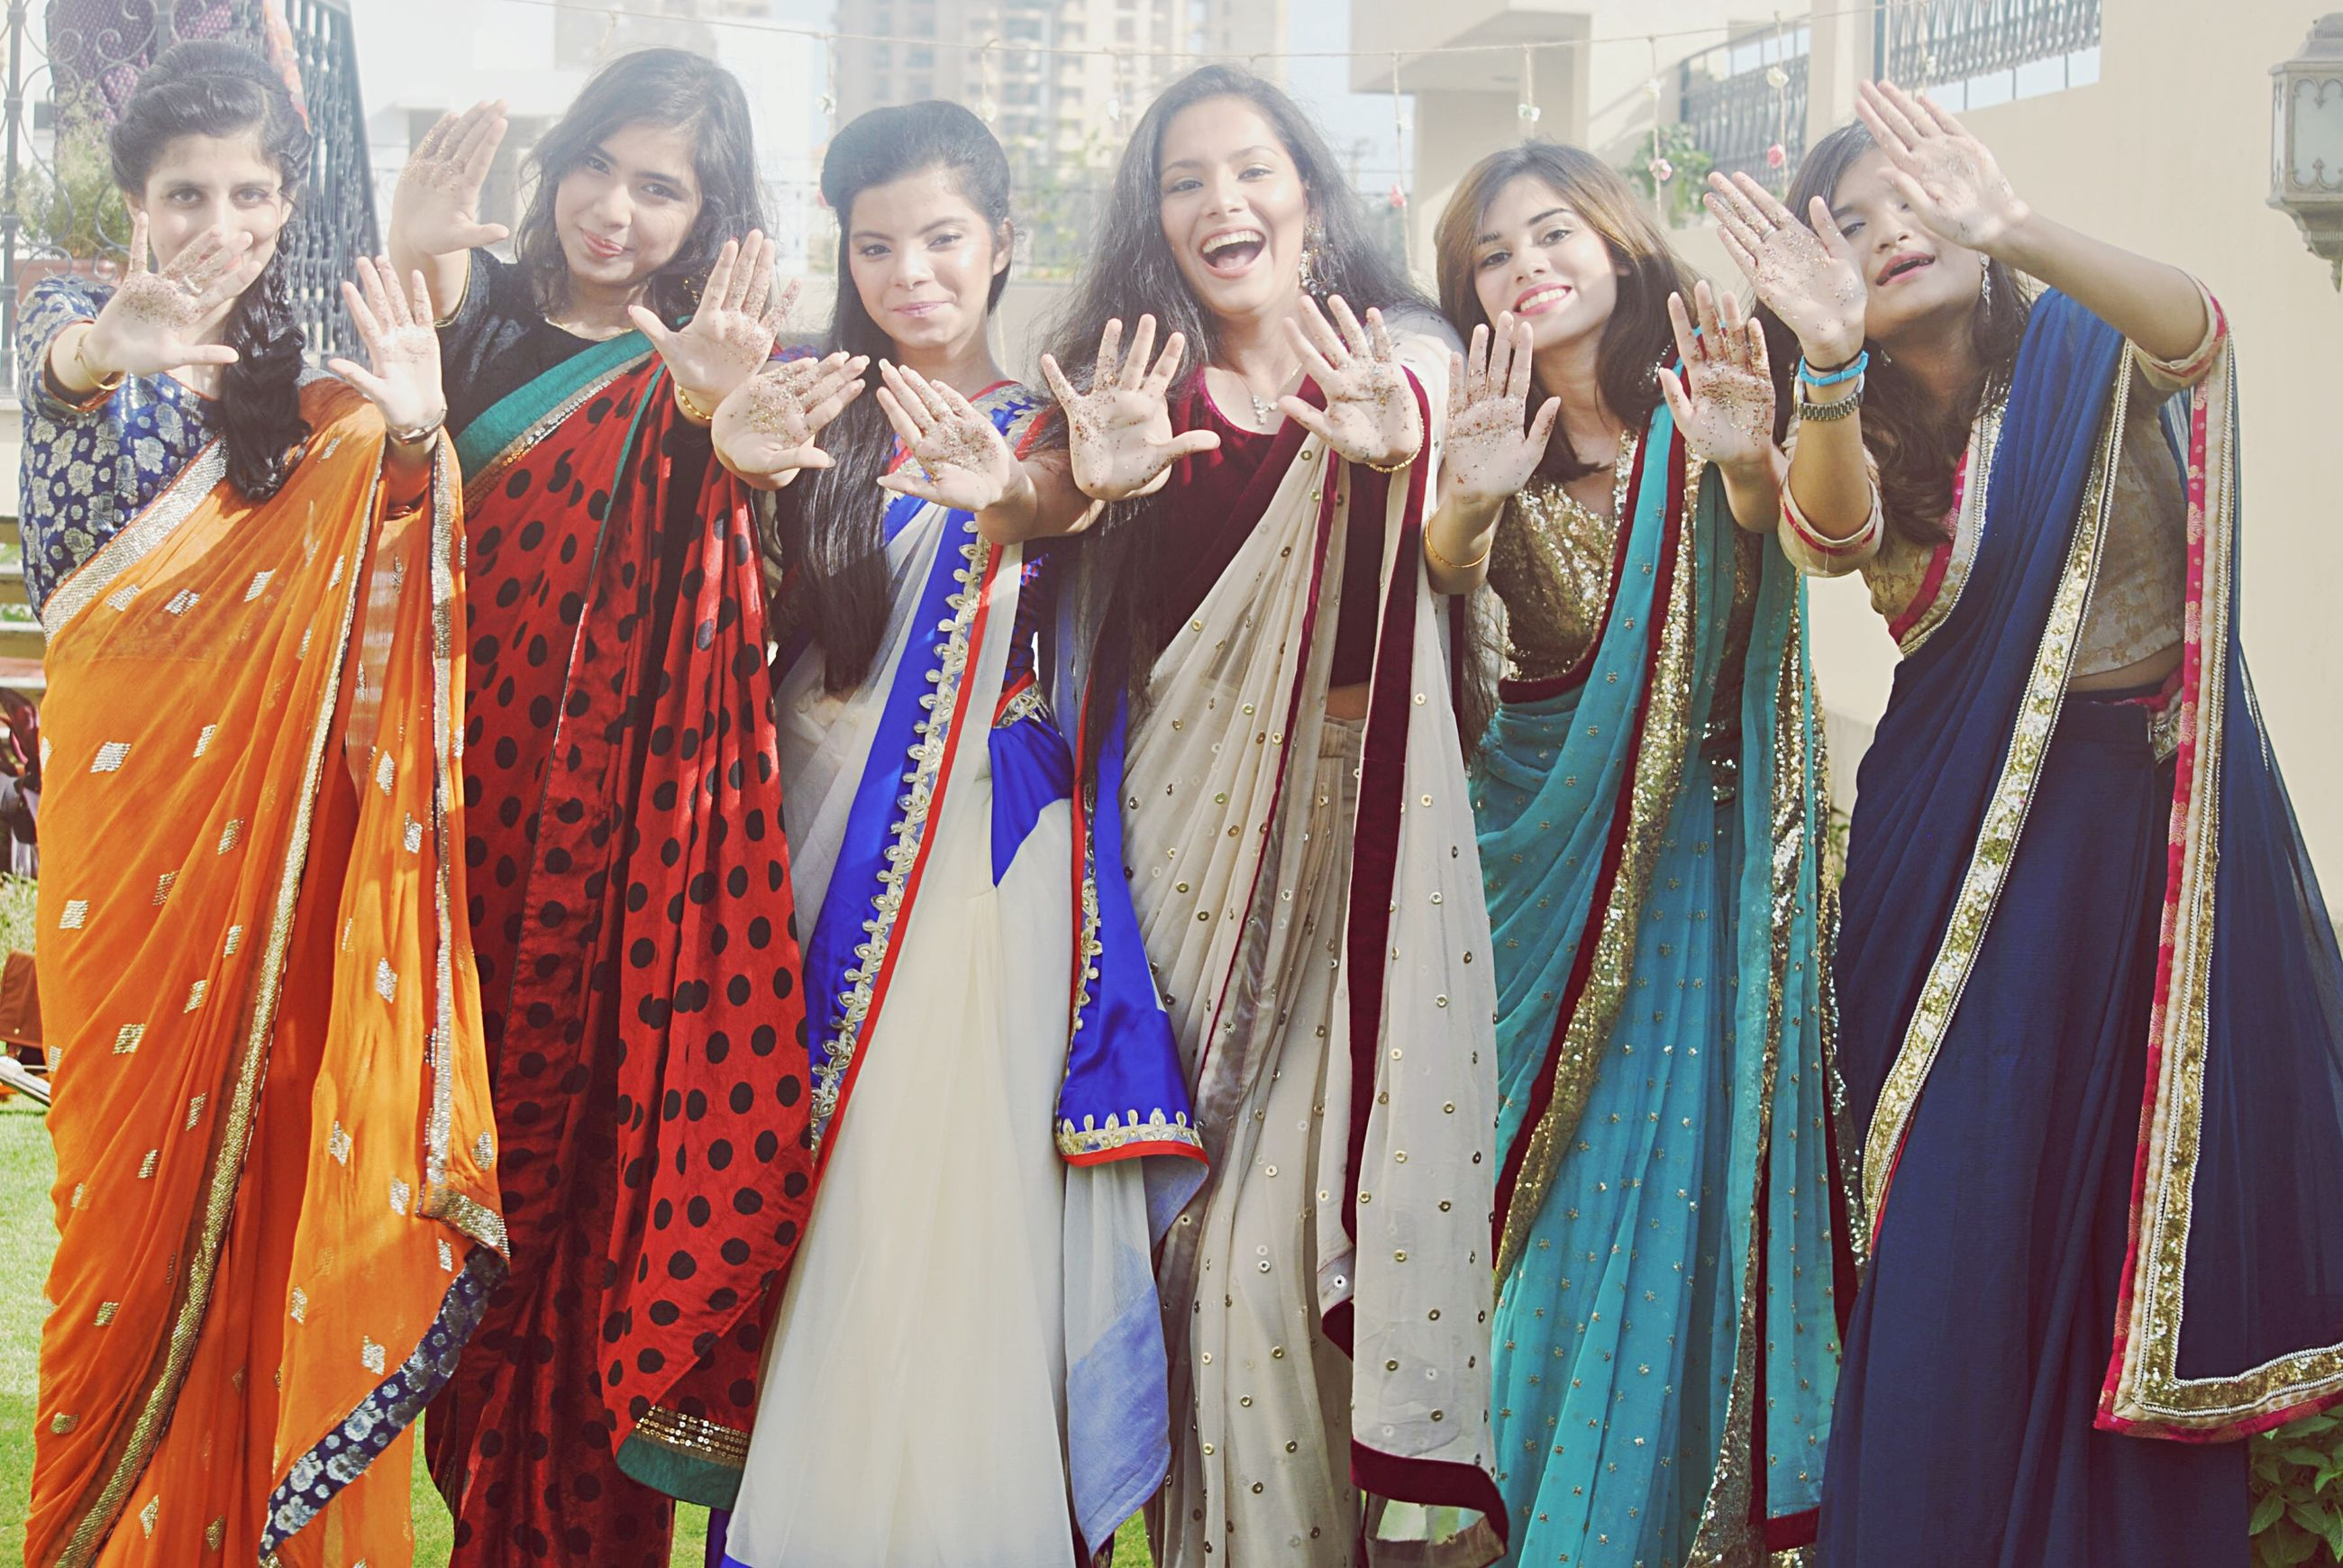 lifestyles, leisure activity, happiness, traditional clothing, large group of people, casual clothing, human representation, standing, togetherness, fun, enjoyment, front view, smiling, person, art, art and craft, cultures, young adult